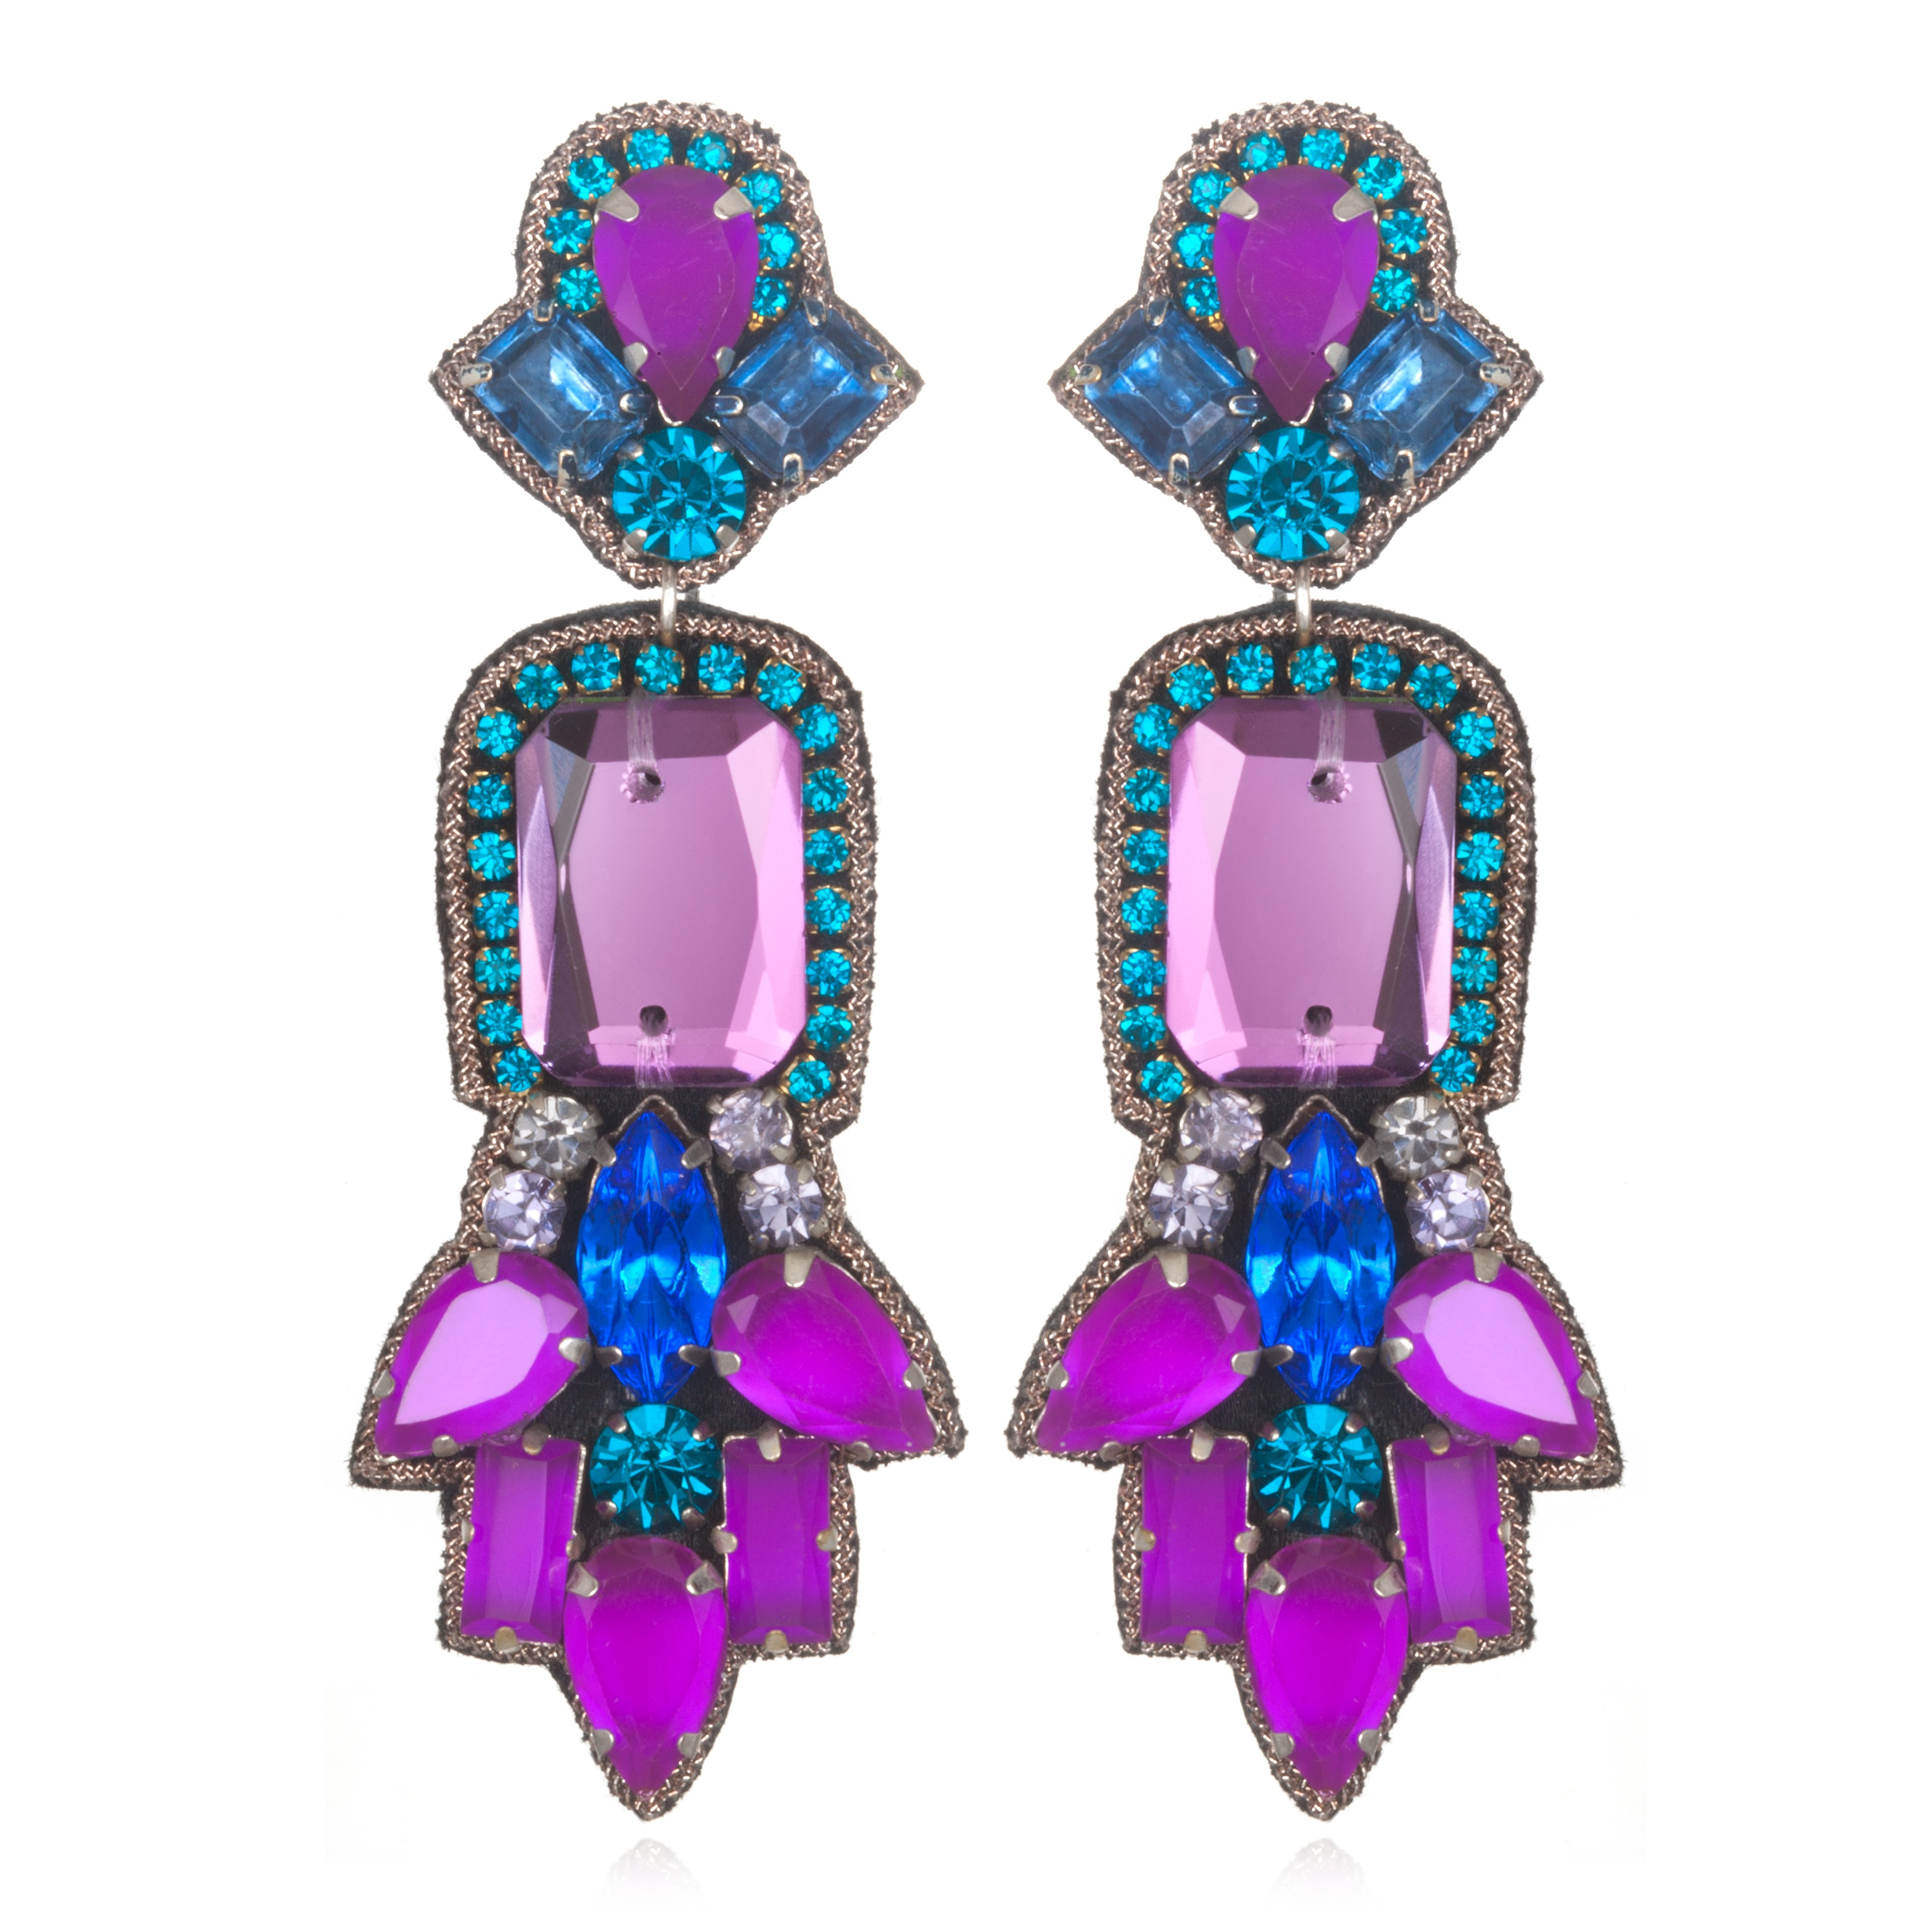 fireworks de 6 Pairs Of Opulent Statement Earrings To Glitz Up Any Outfit This Season